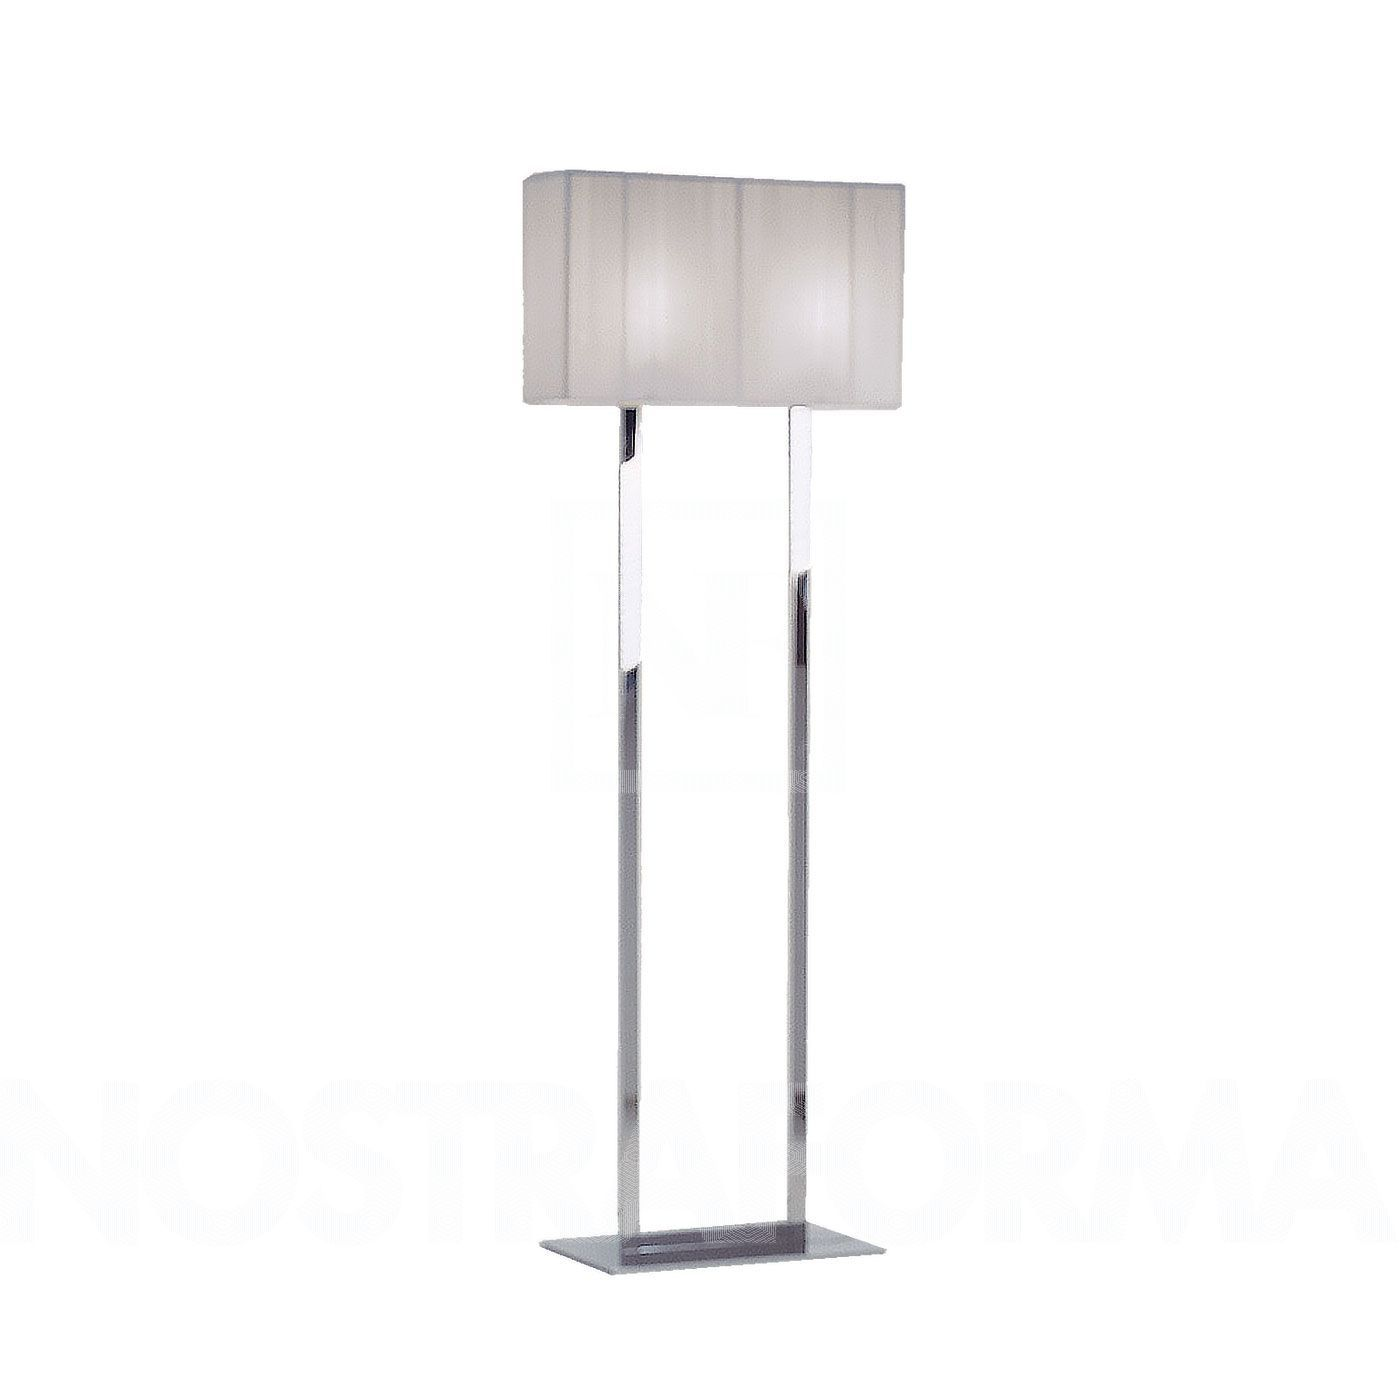 Axo light clavius pt floor lamp rectangular shade lighting axo light clavius pt floor lamp rectangular shade aloadofball Images